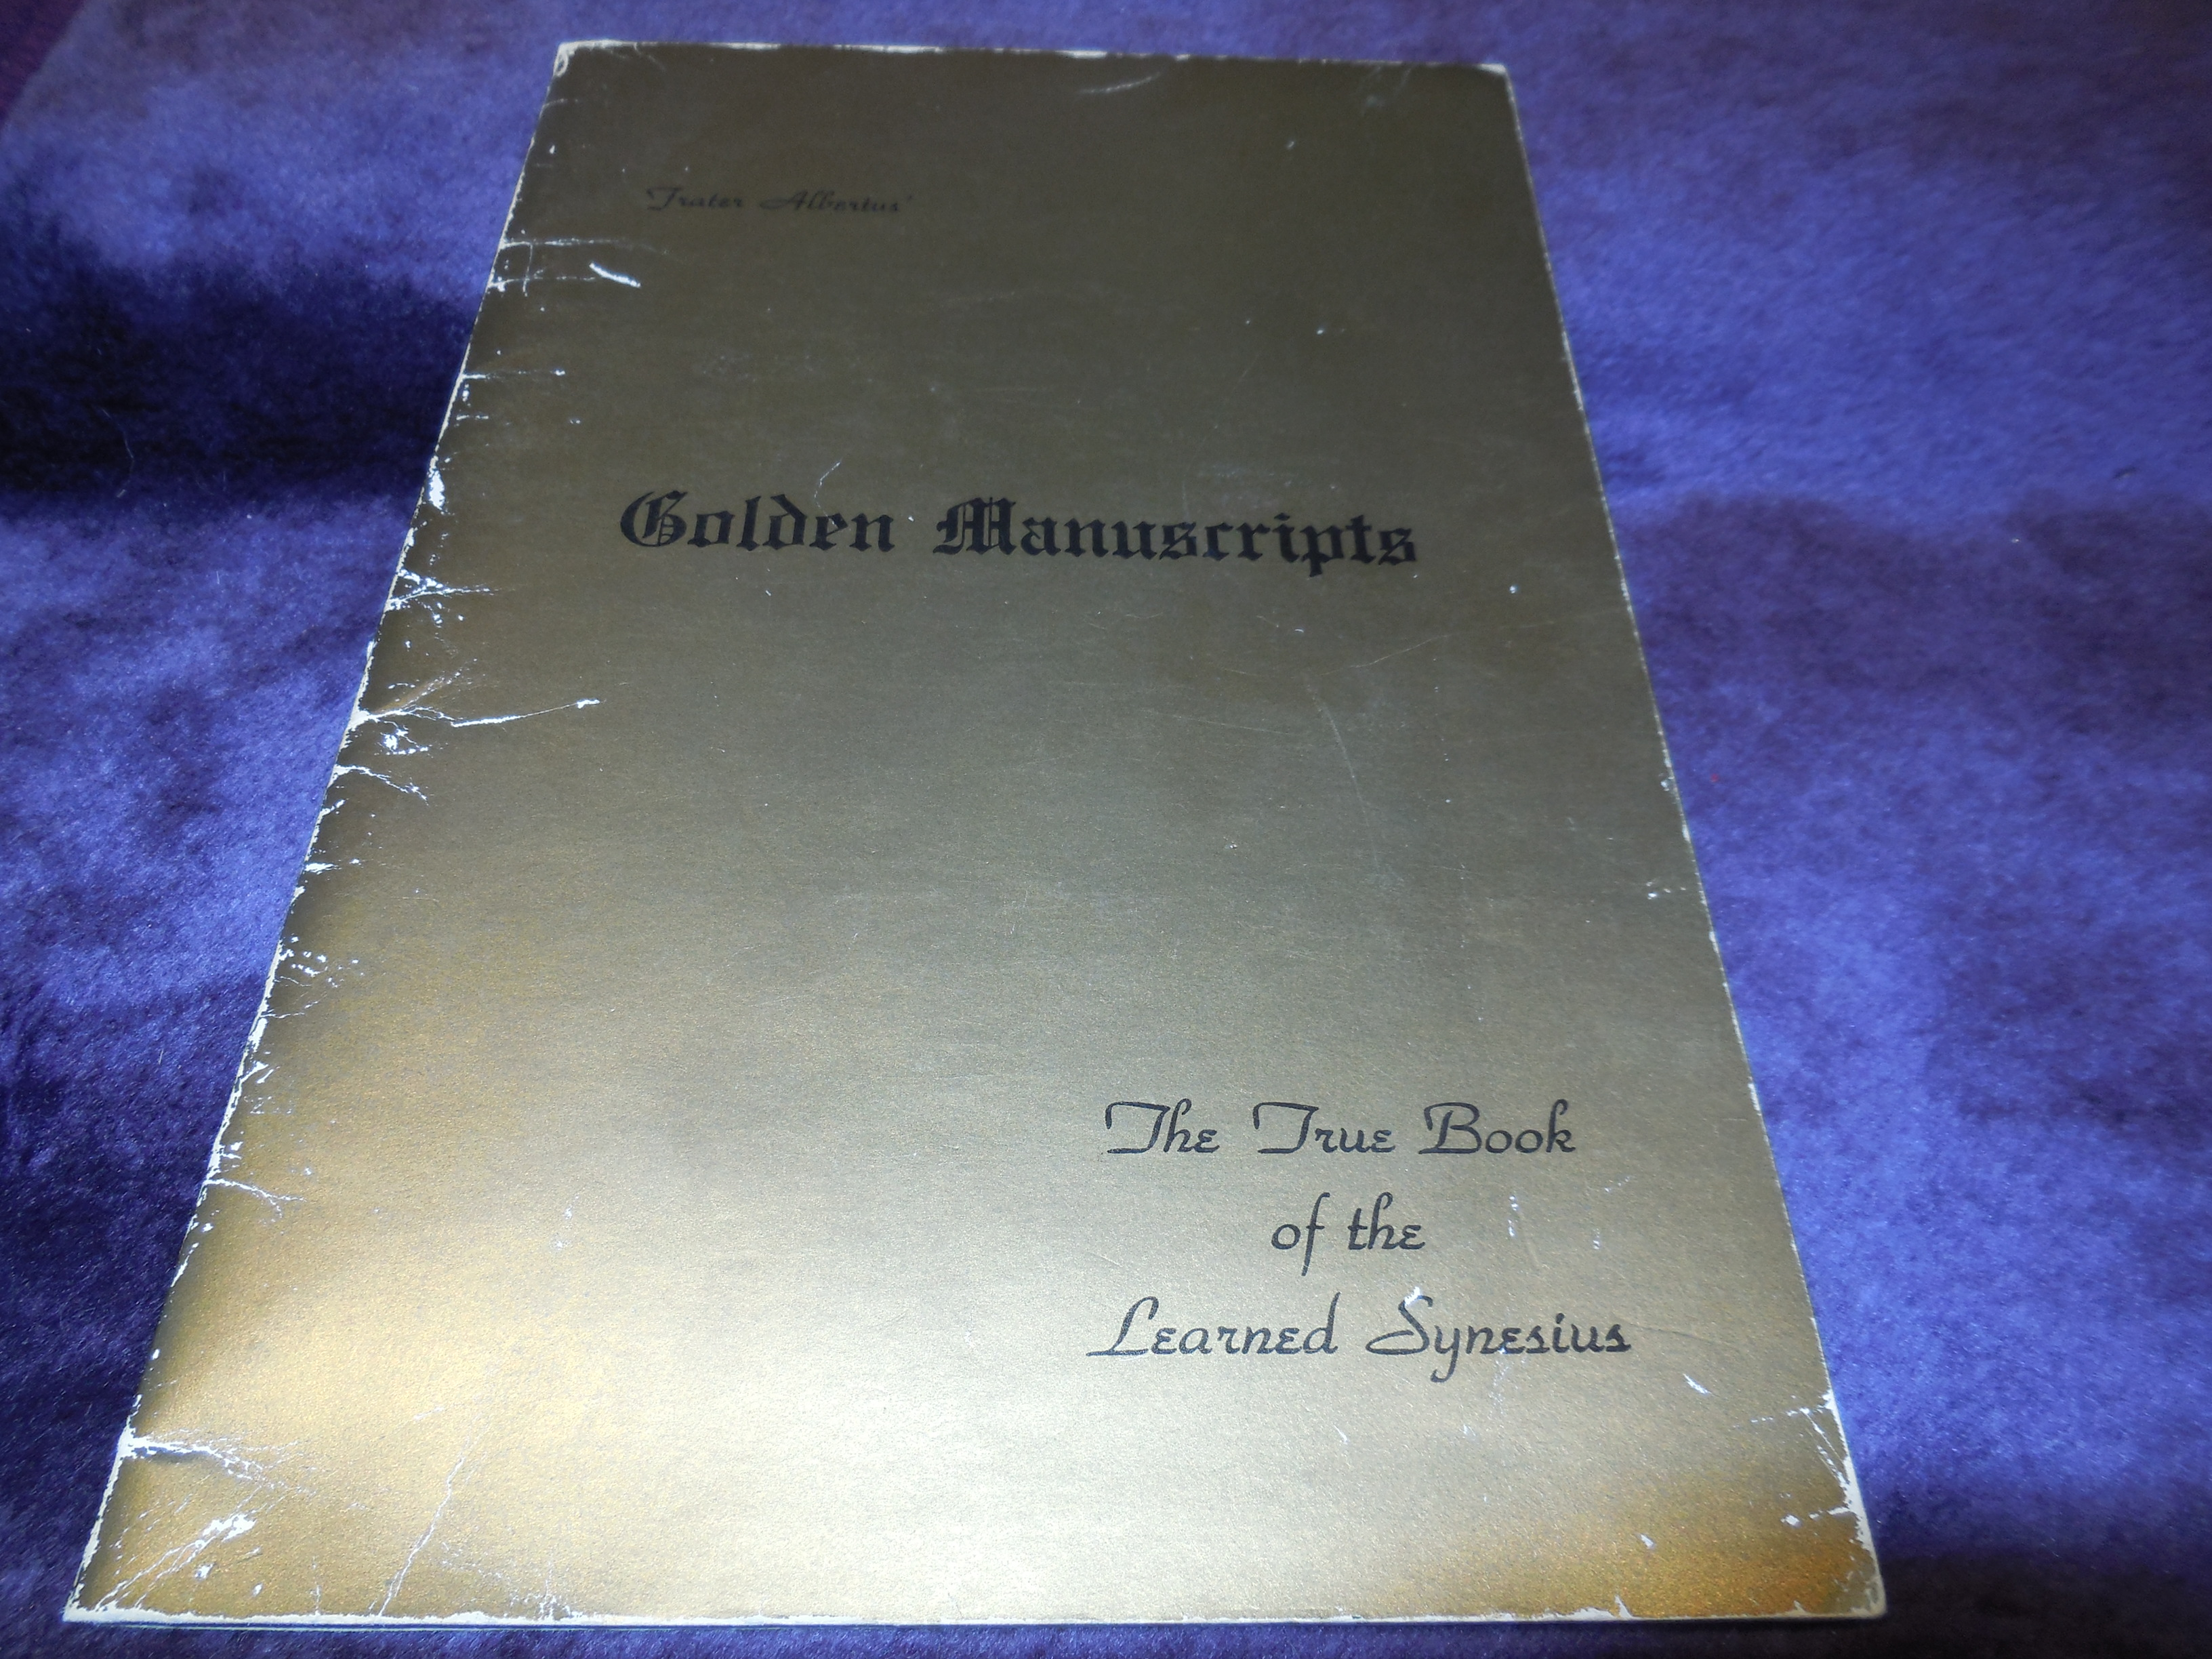 Image for Golden Manuscripts - The True Book of the Learned Synesius